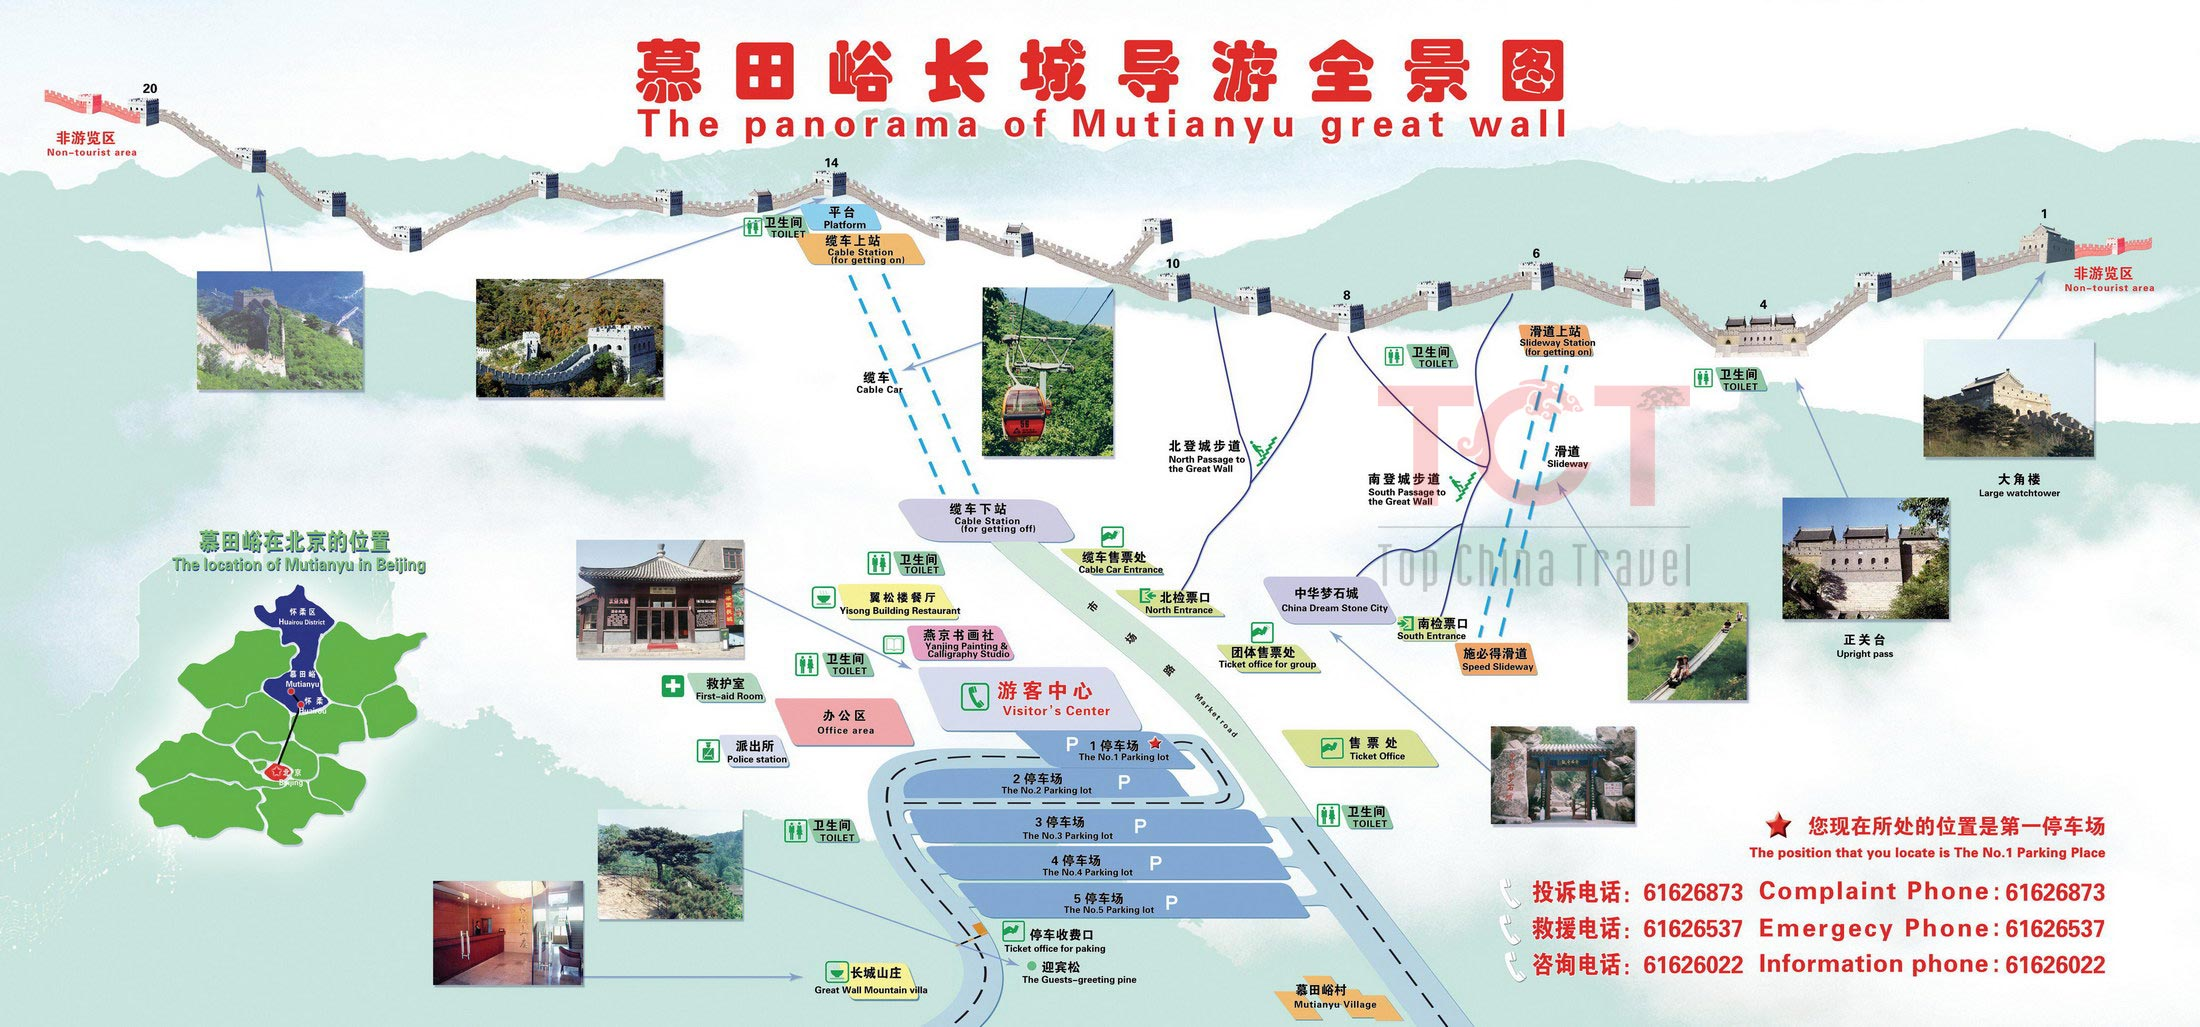 Map of the Mutianyu Great Wall